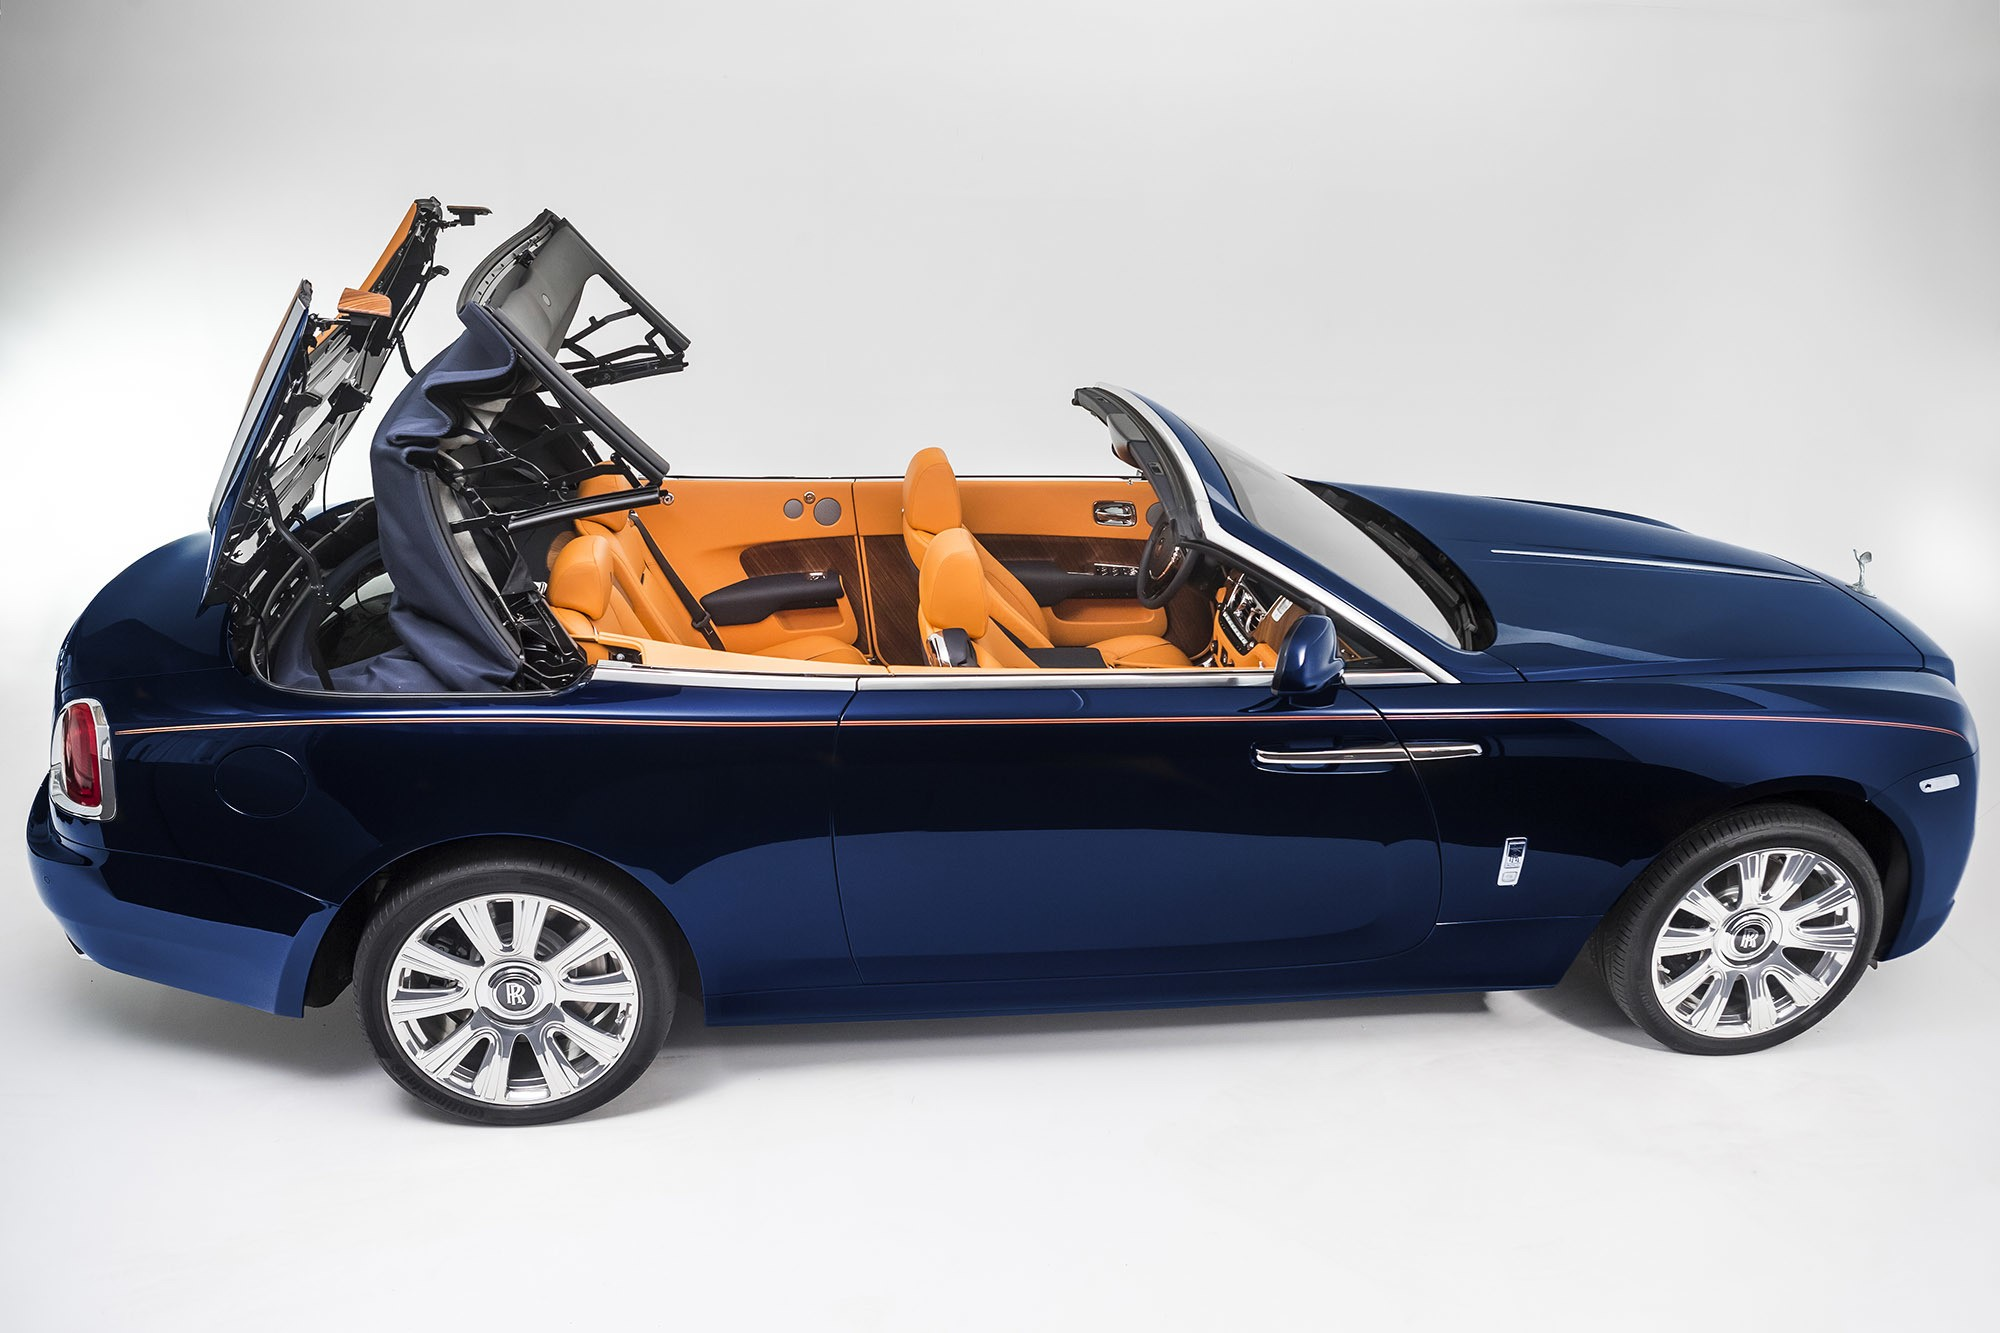 Rolls Royce Design Chief Giles Taylor Explains Why The New